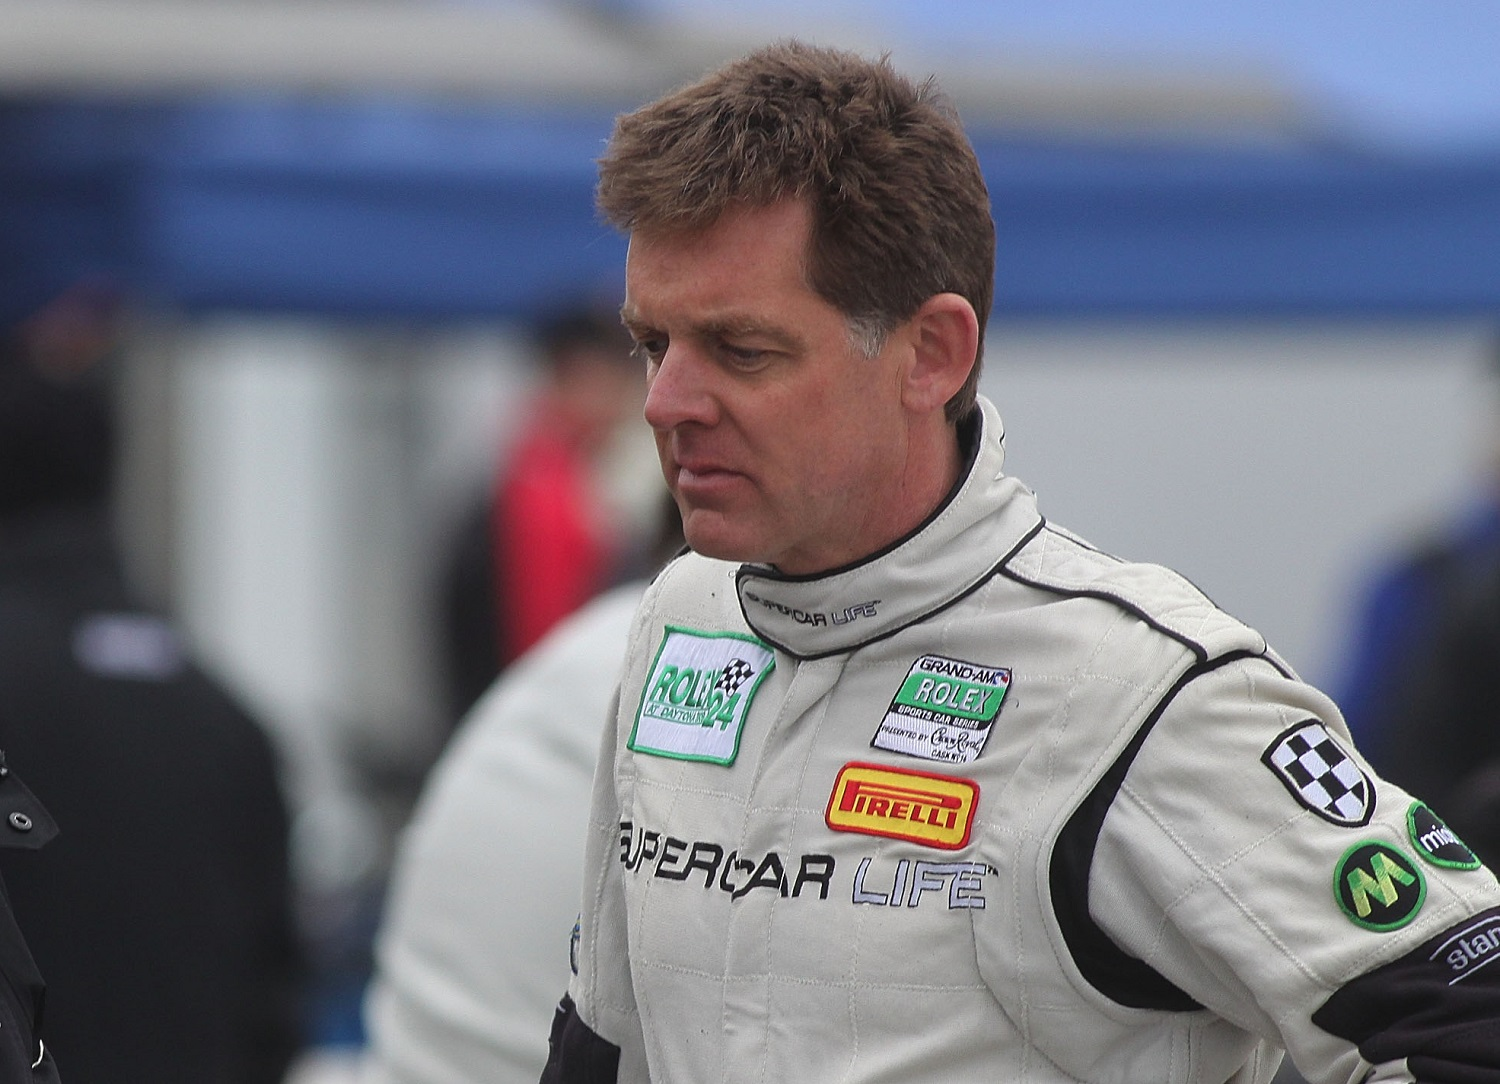 Le Mans Driver Scott Tucker Earns $1.27 Billion of Vindication From the U.S. Supreme Court but Remains in Prison